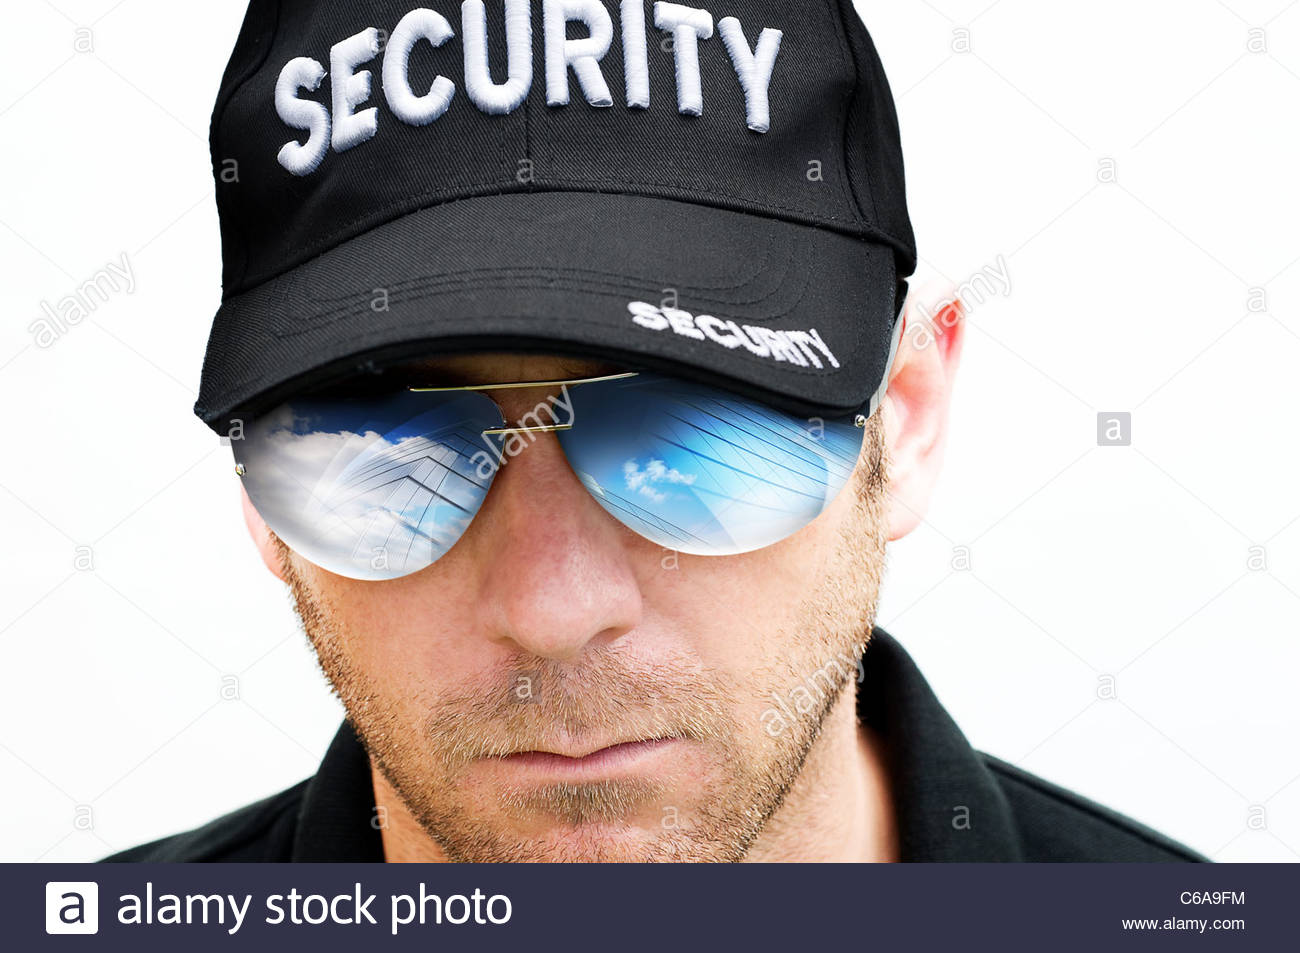 a25ab6daae4 Guard Hat Stock Photos   Guard Hat Stock Images - Alamy